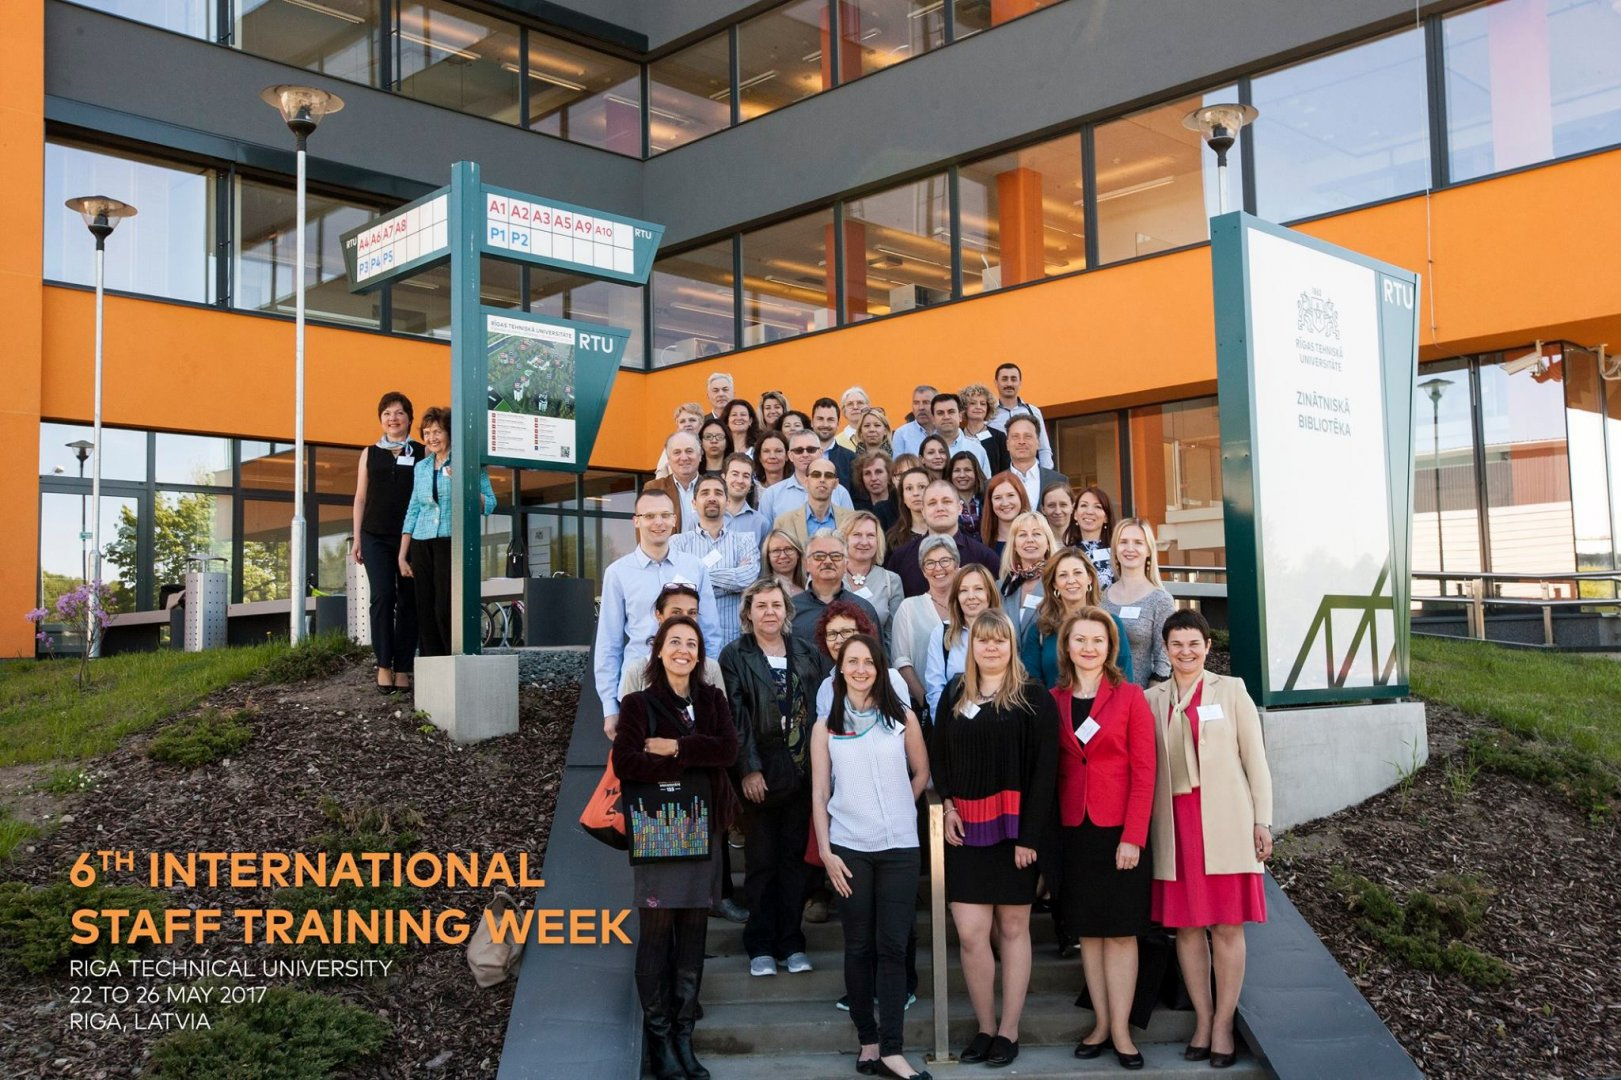 RTU International Staff Training Week 2018